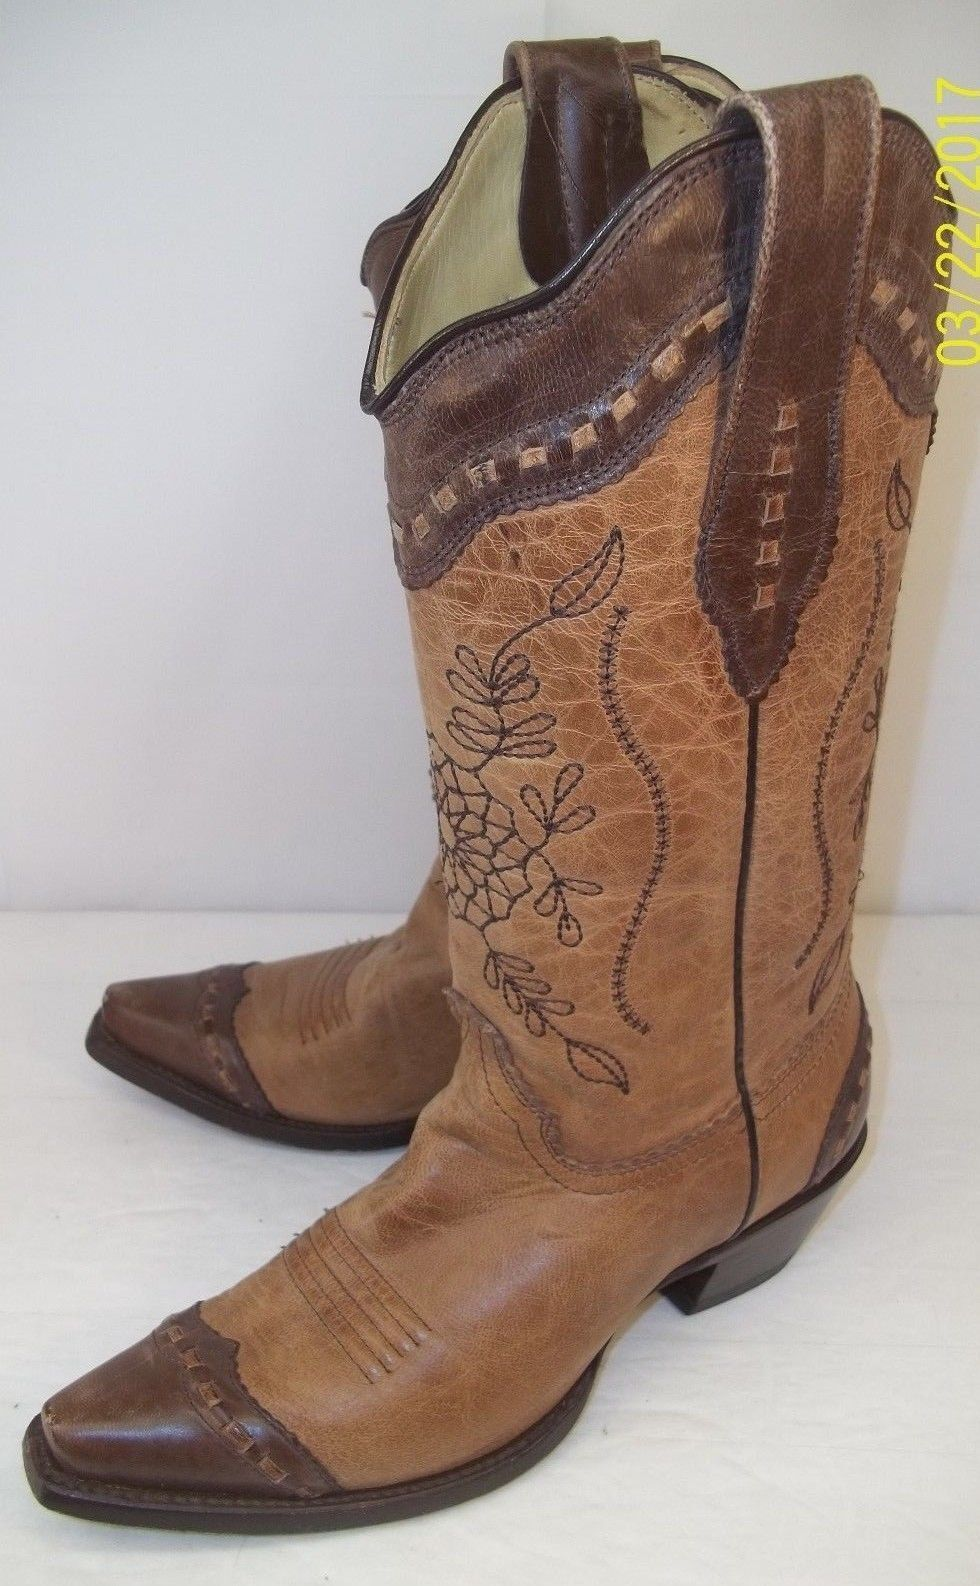 Corral Boots Wo's US 6M Chocolate Chocolate Chocolate Sand Distressed Goat A2500 western floral snip ee4141